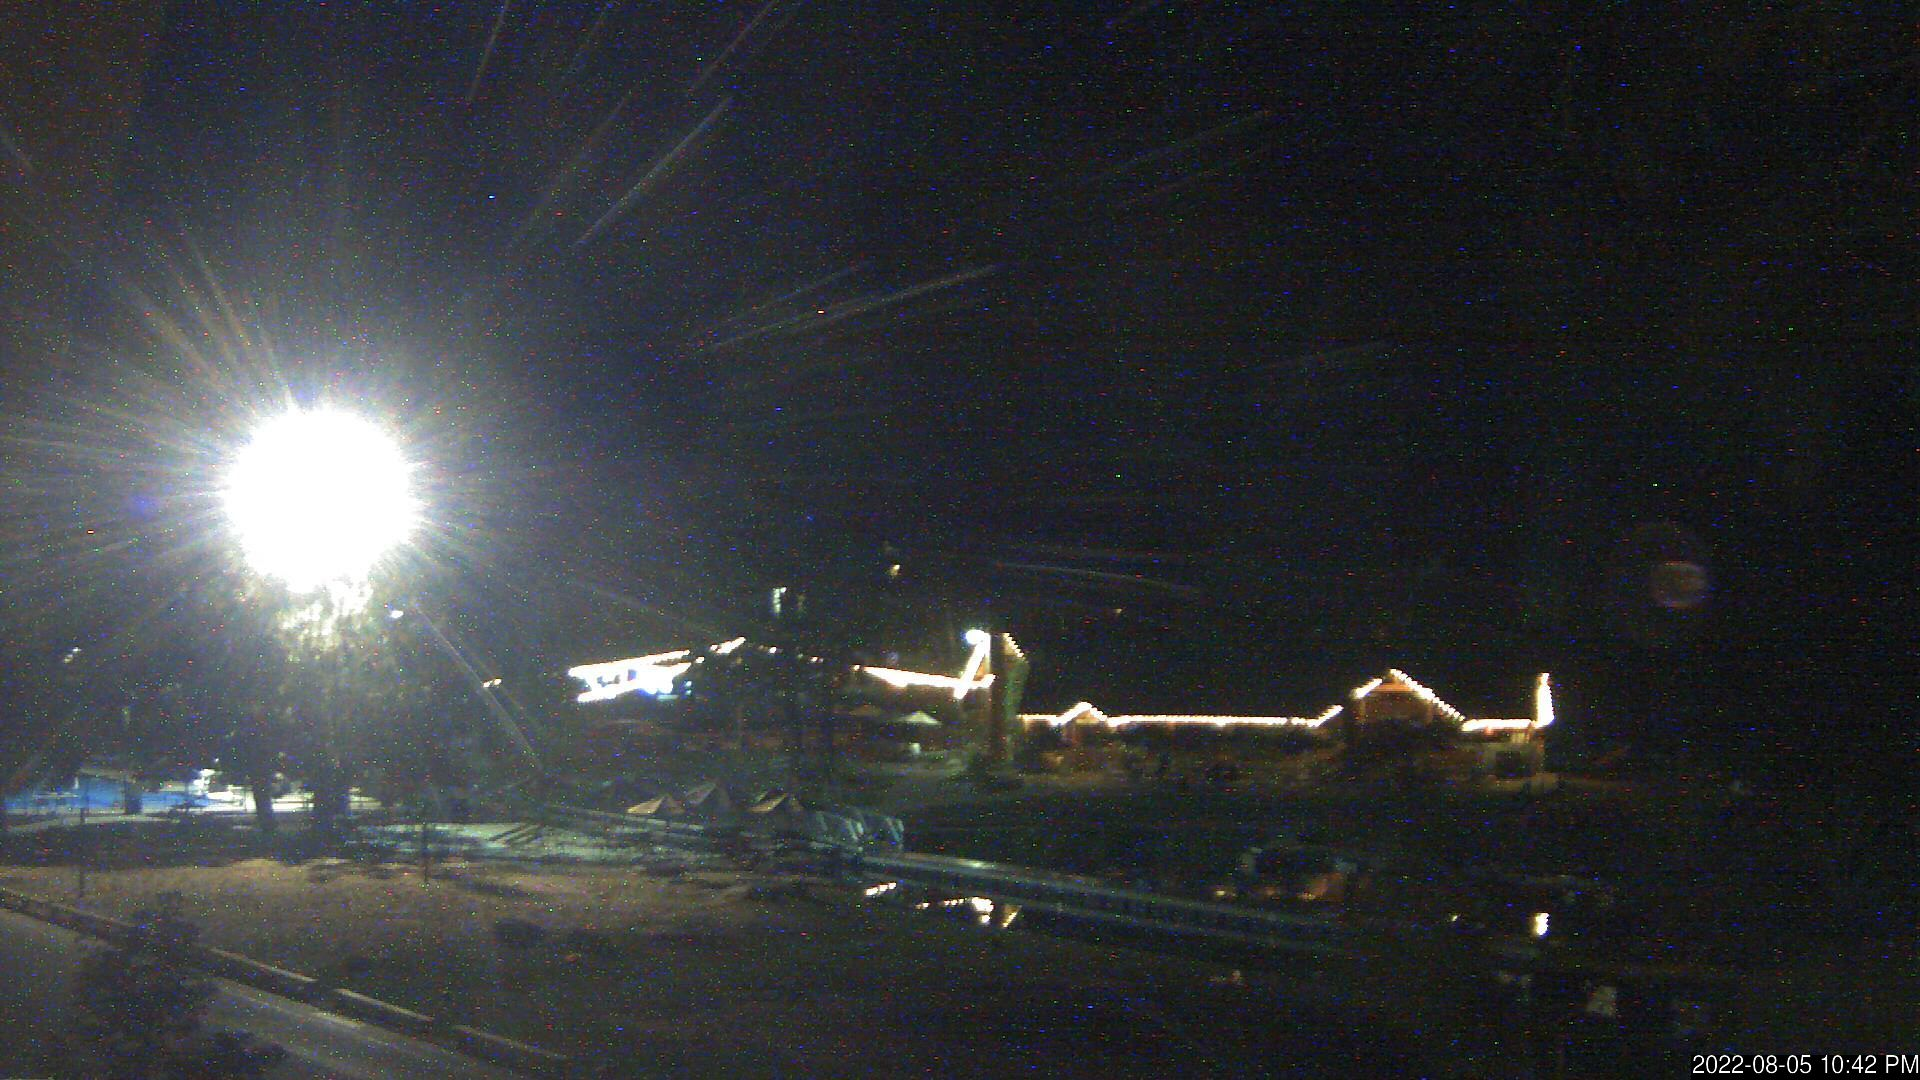 Hume, CA - Hume Lake Christian Camps Webcam